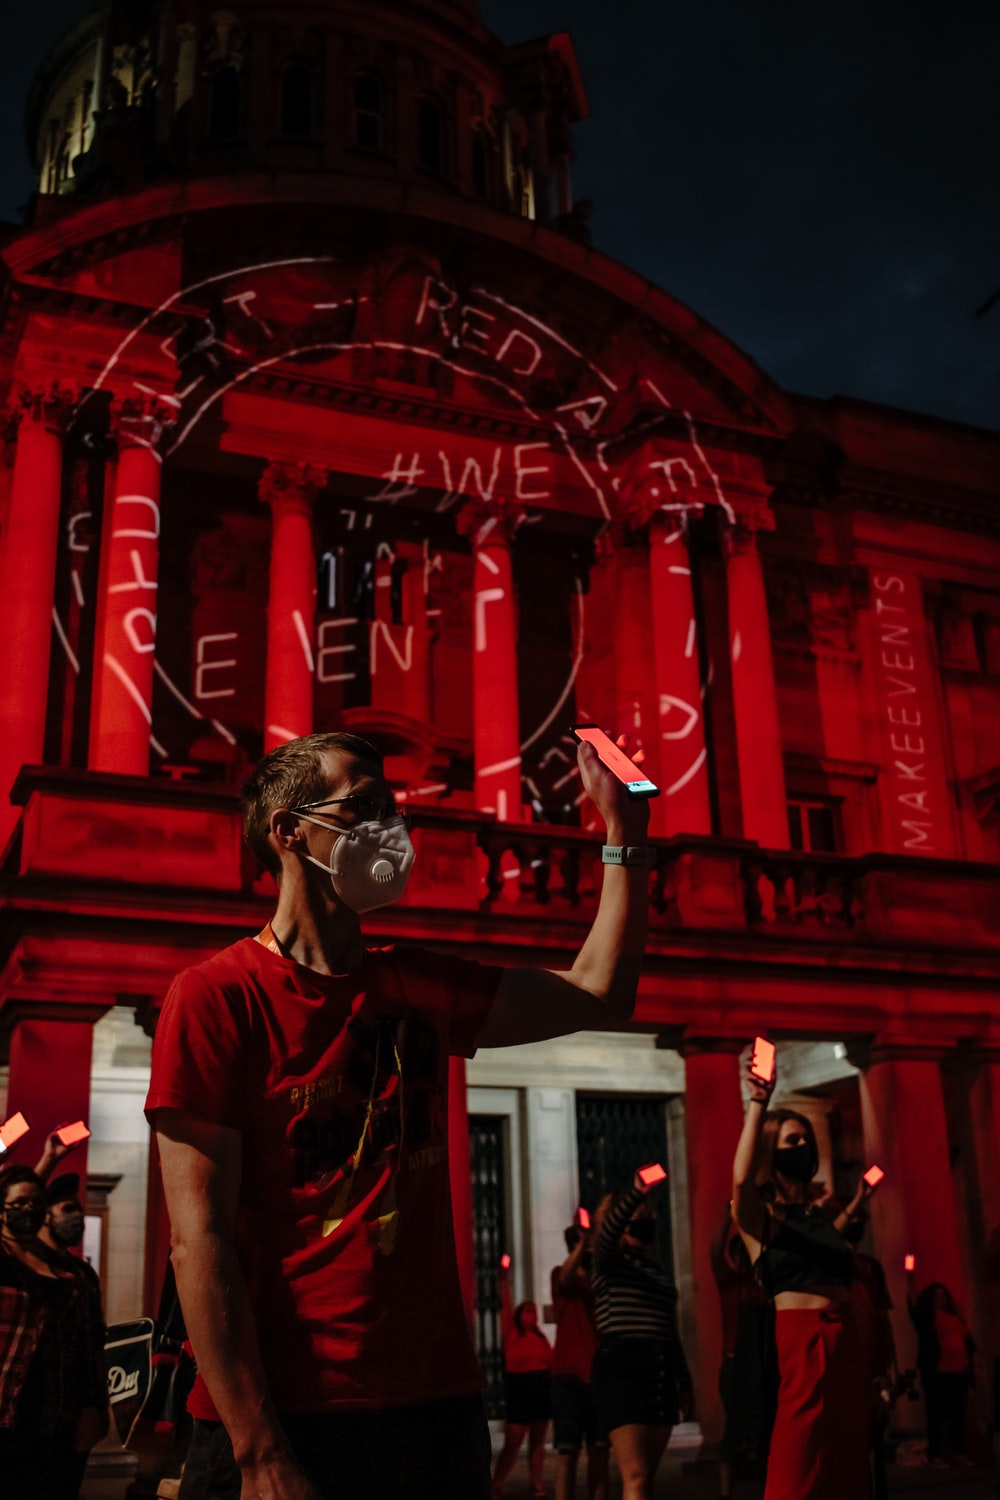 man in white crew neck t-shirt wearing black goggles standing near red building during nighttime